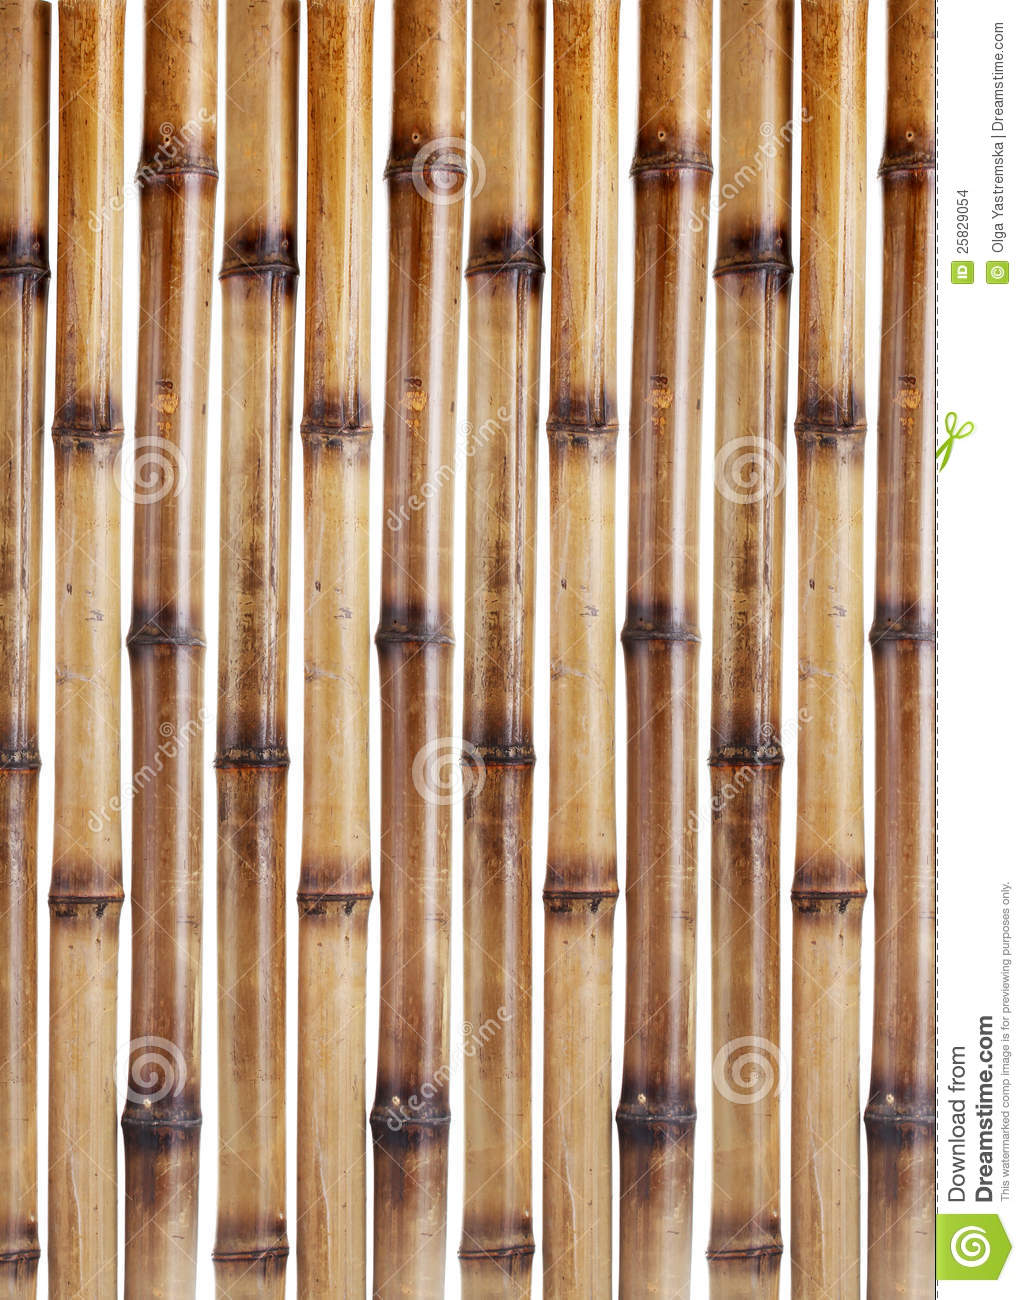 Single Bamboo Stick